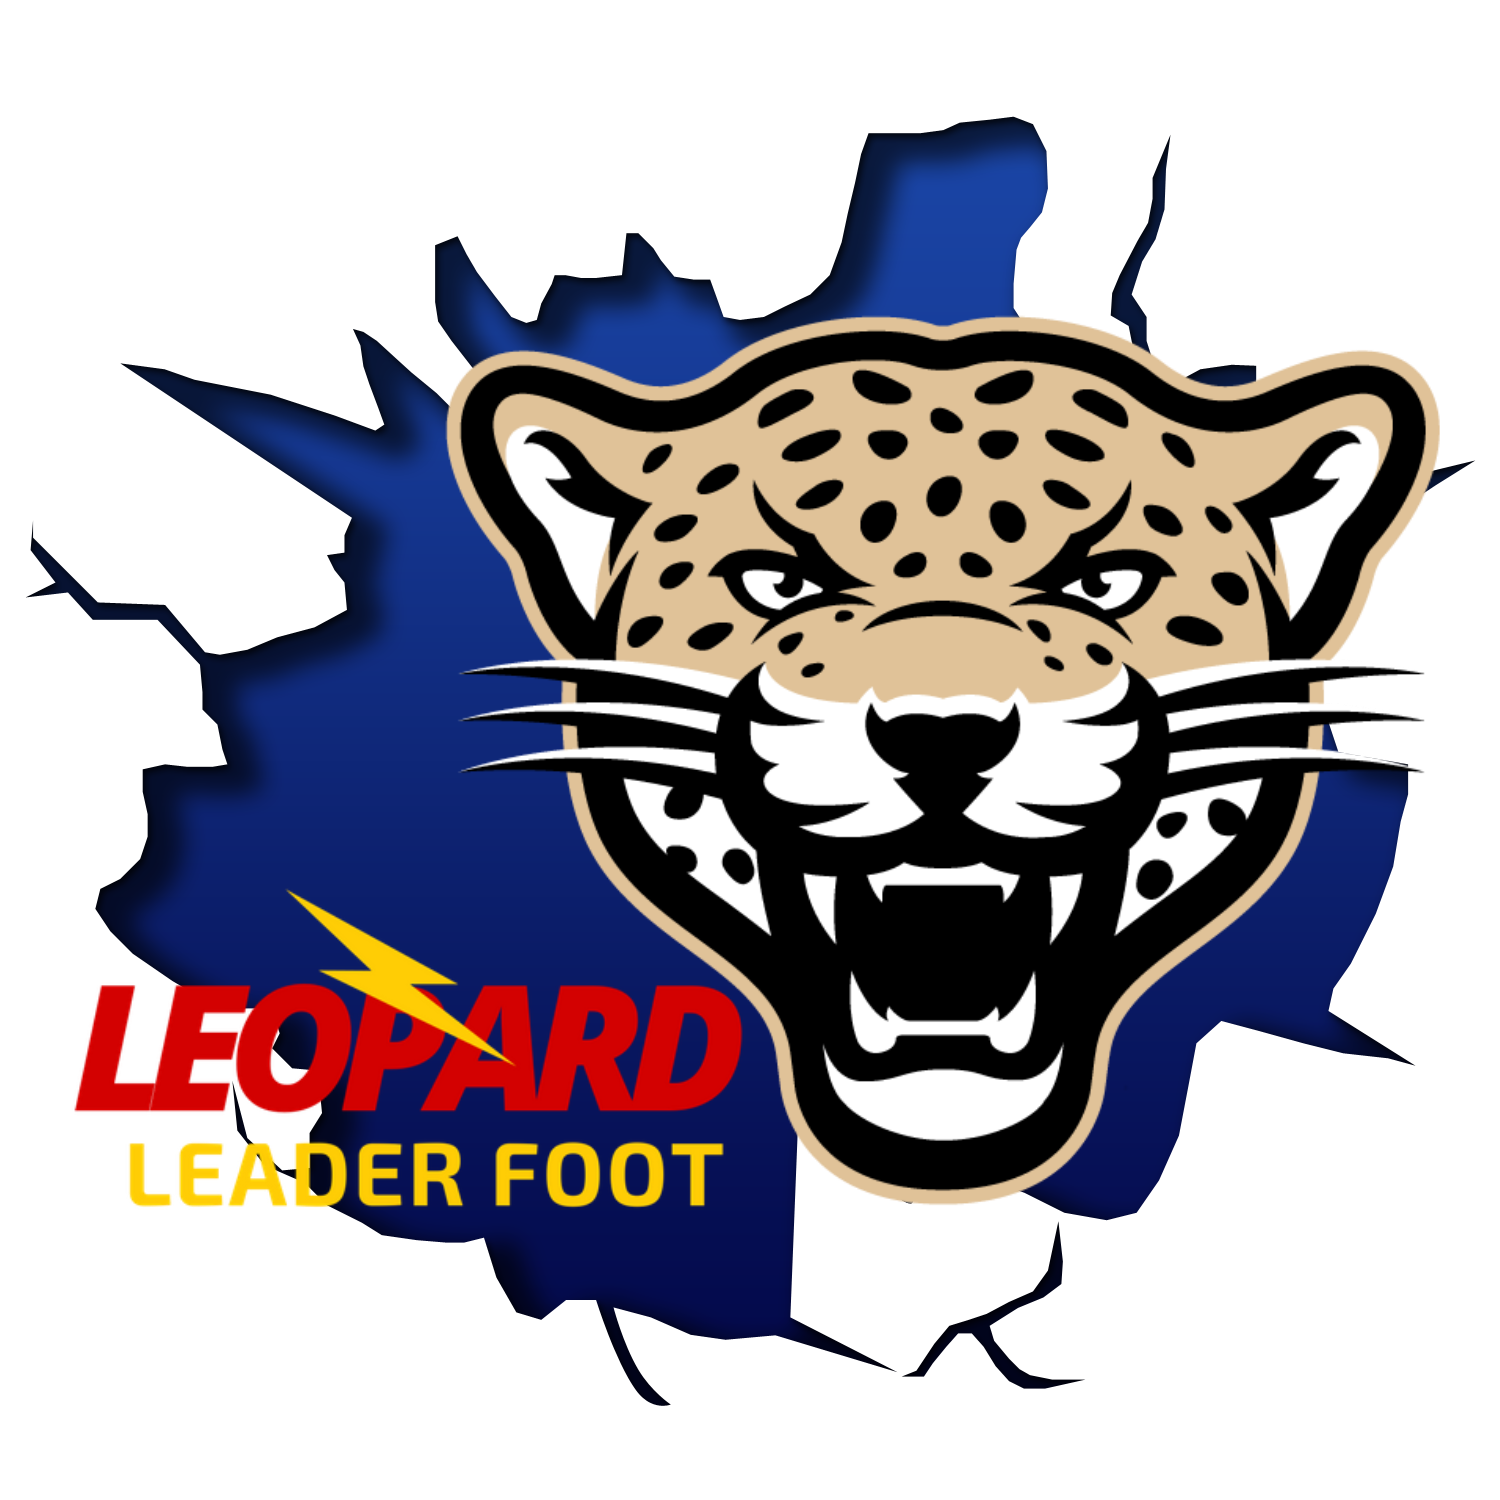 Leopard Leader Foot